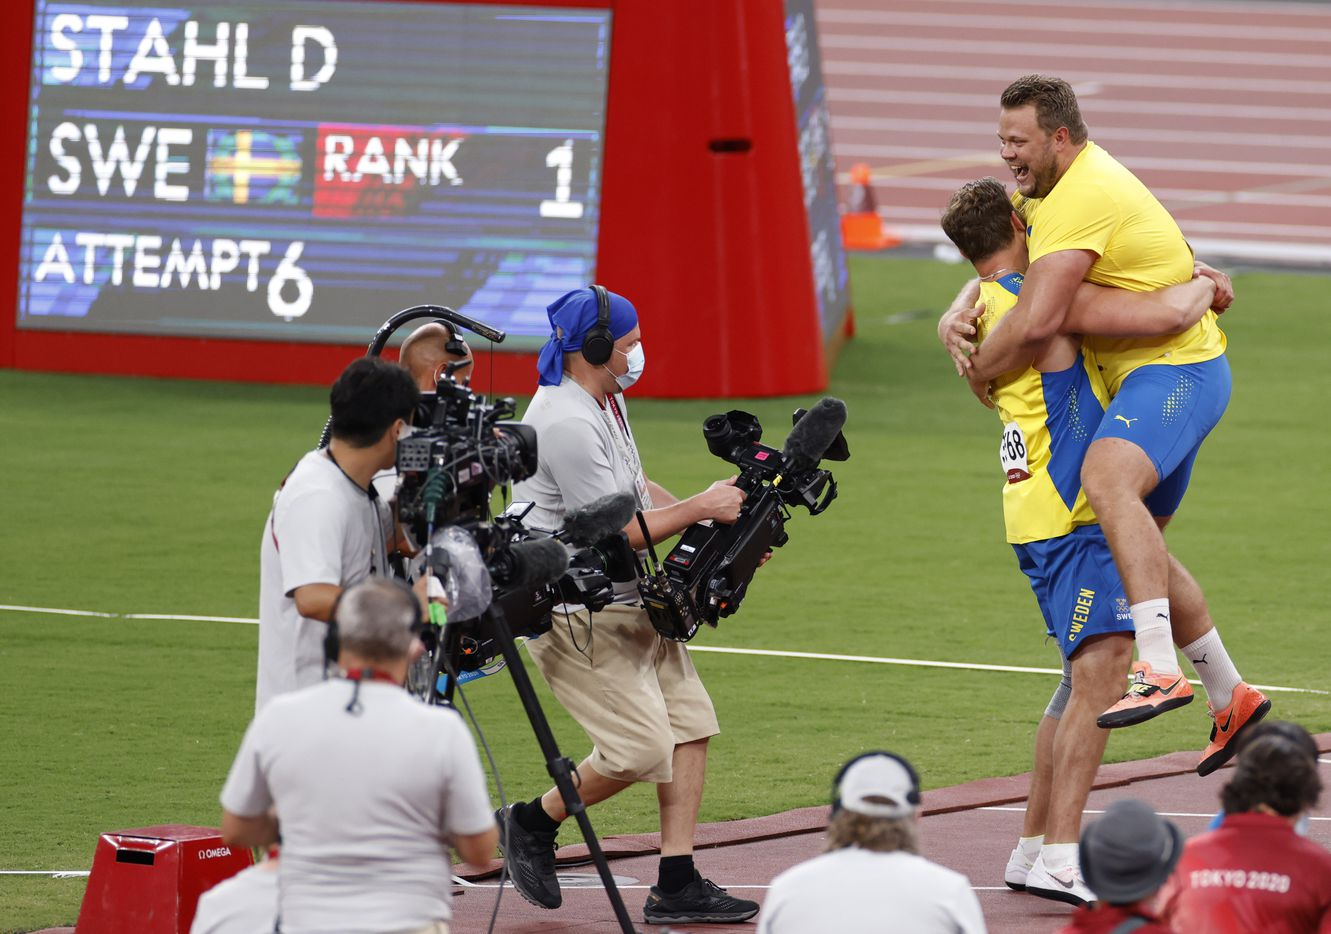 Sweden's Daniel Stahl is lifted up by Sweden's Simon Pettersson after the two took first and second place in the men's discus throw final during the postponed 2020 Tokyo Olympics at Olympic Stadium, on Saturday, July 31, 2021, in Tokyo, Japan. Stahl earned a gold medal with a throw of 68.90 meters and Peterson earned silver with a throw of 67.39 meters. (Vernon Bryant/The Dallas Morning News)